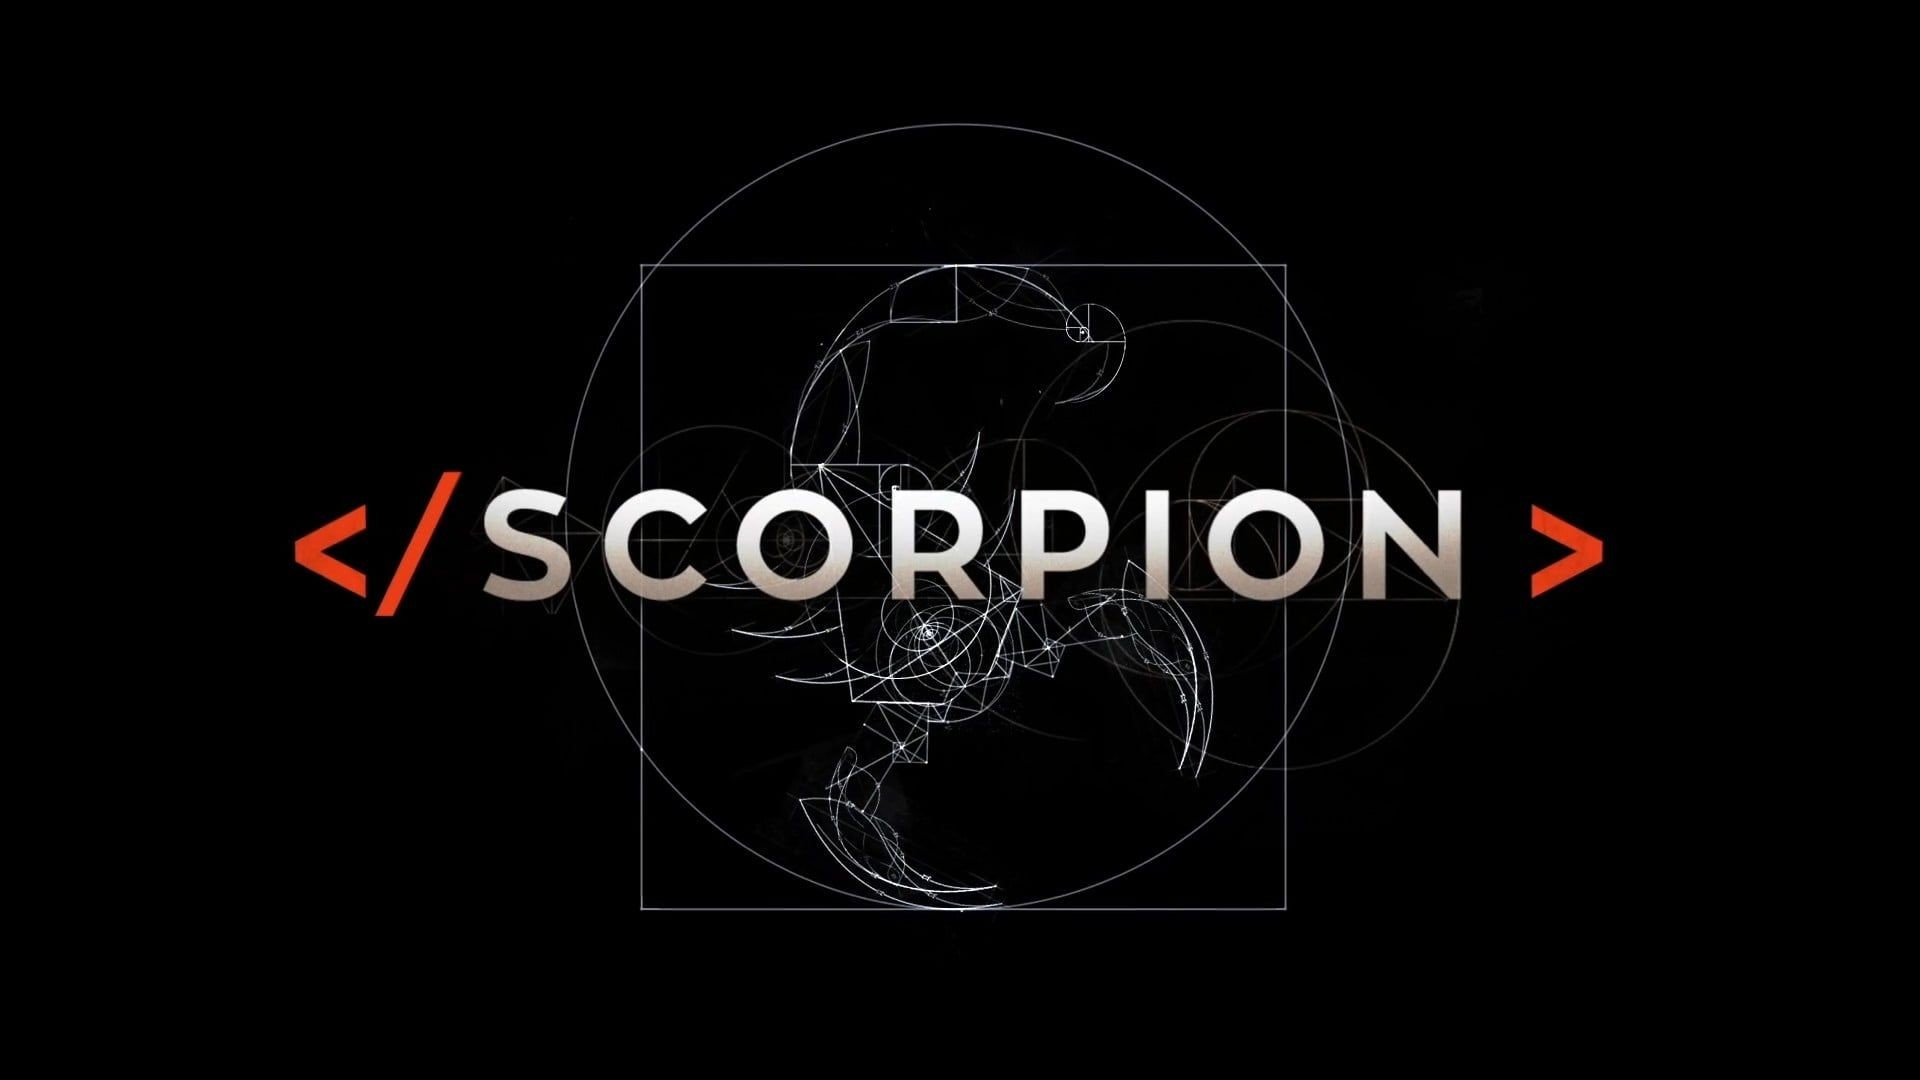 Res: 1920x1080, undefined Scorpion Wallpaper (49 Wallpapers) | Adorable Wallpapers